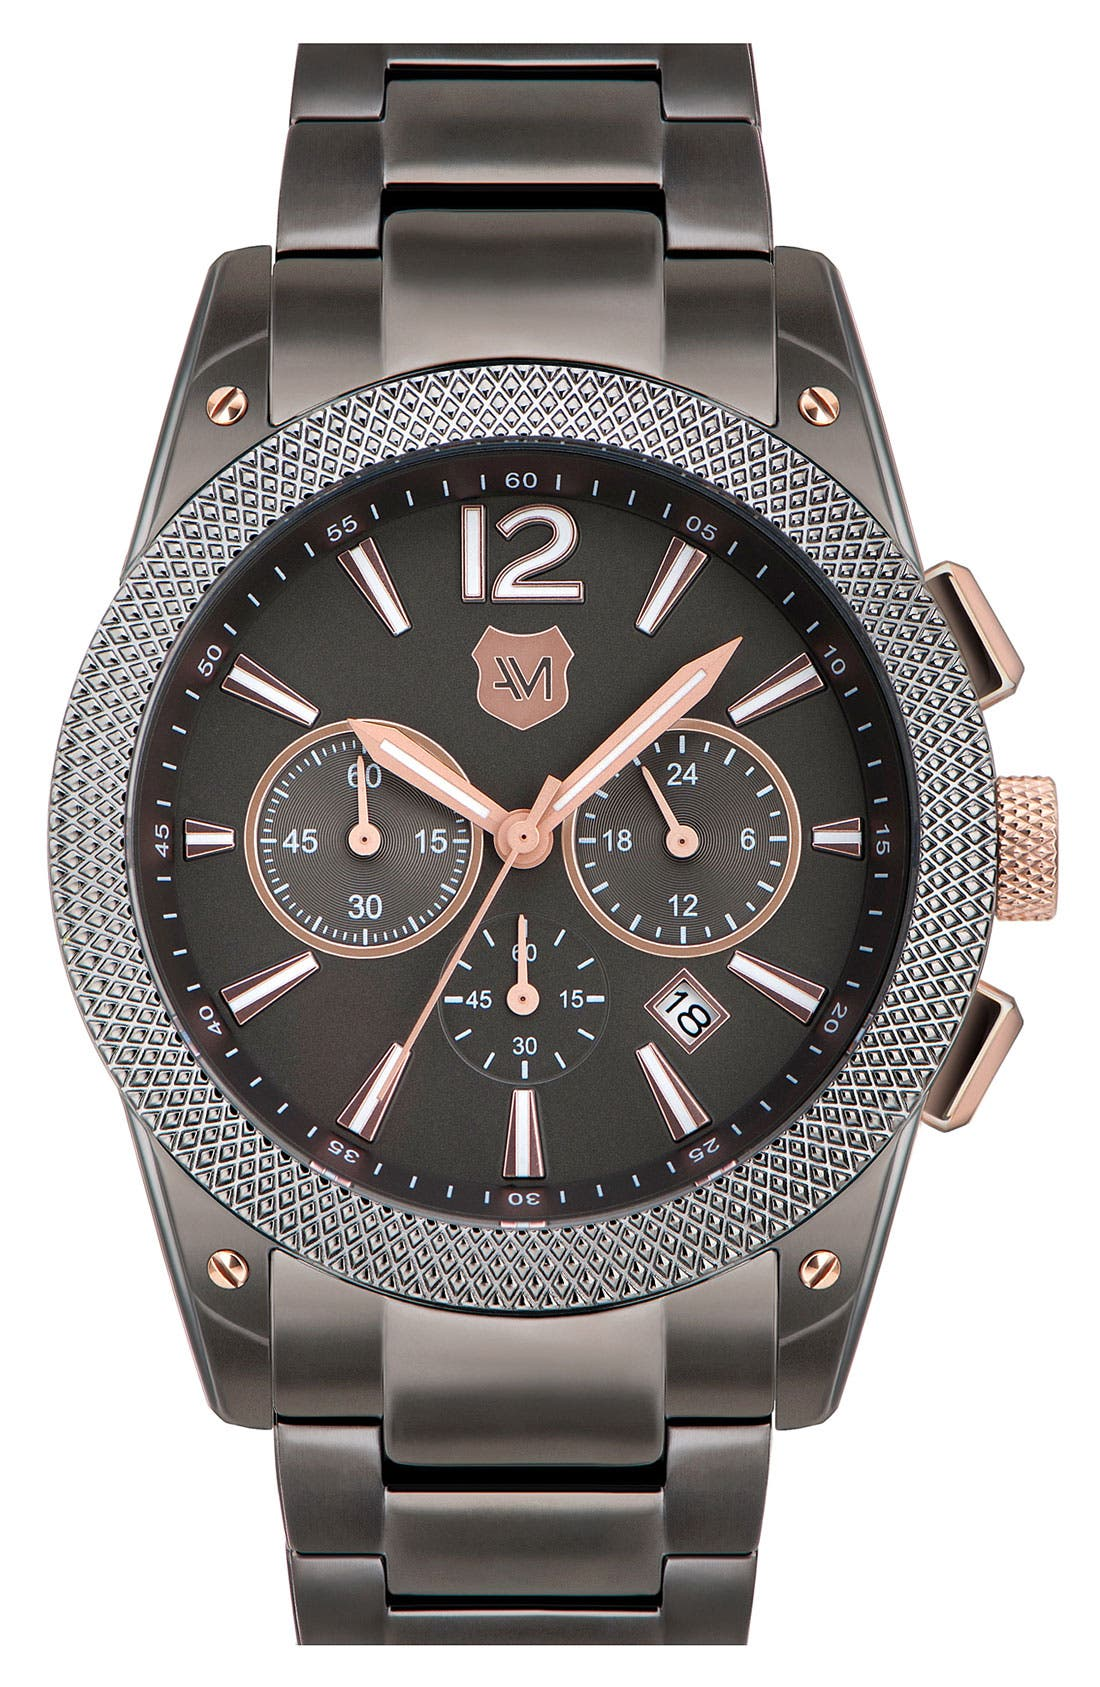 Main Image - Andrew Marc Watches 'Heritage Pilot' Chronograph Bracelet Watch, 45mm